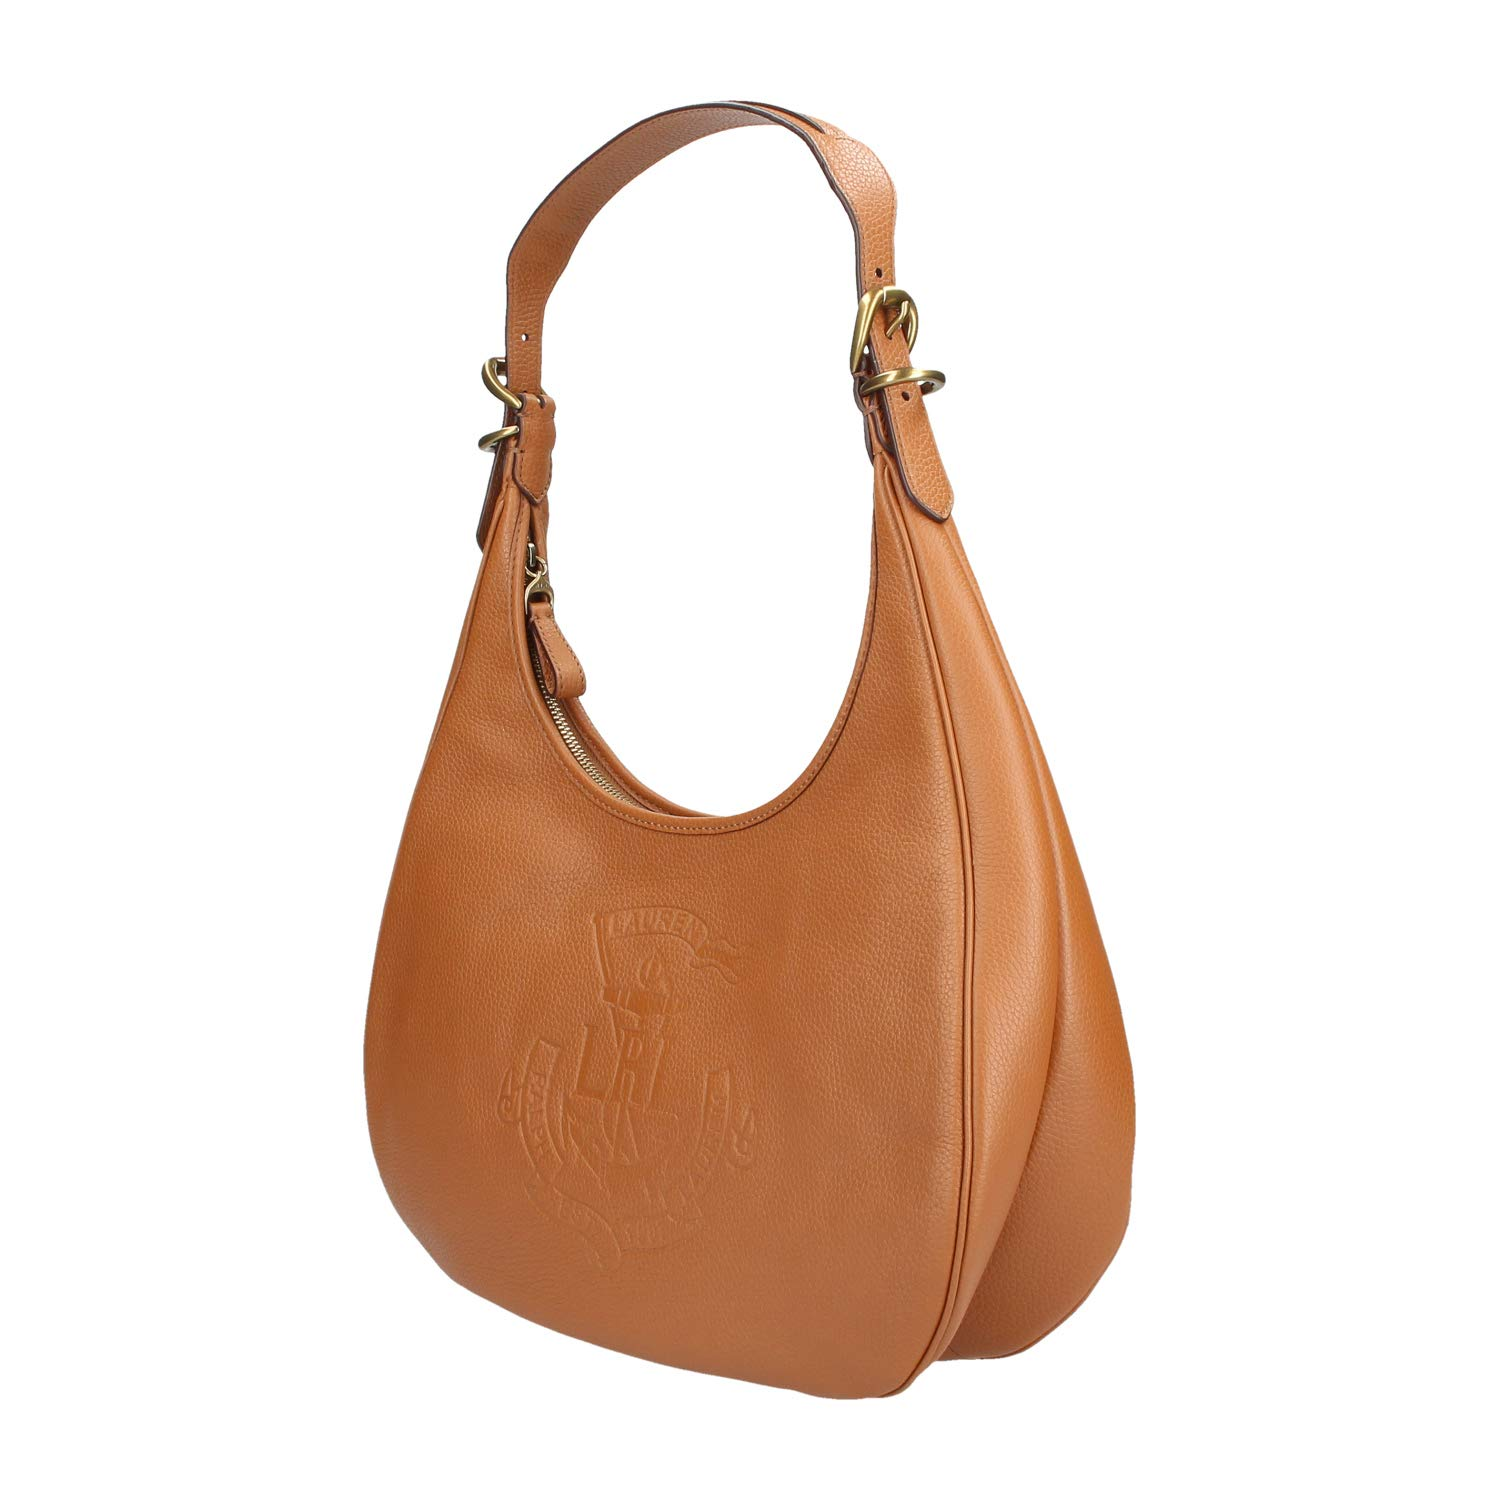 4c20c9e2516 Ralph Lauren Huntley, Bag for Women  Amazon.co.uk  Clothing